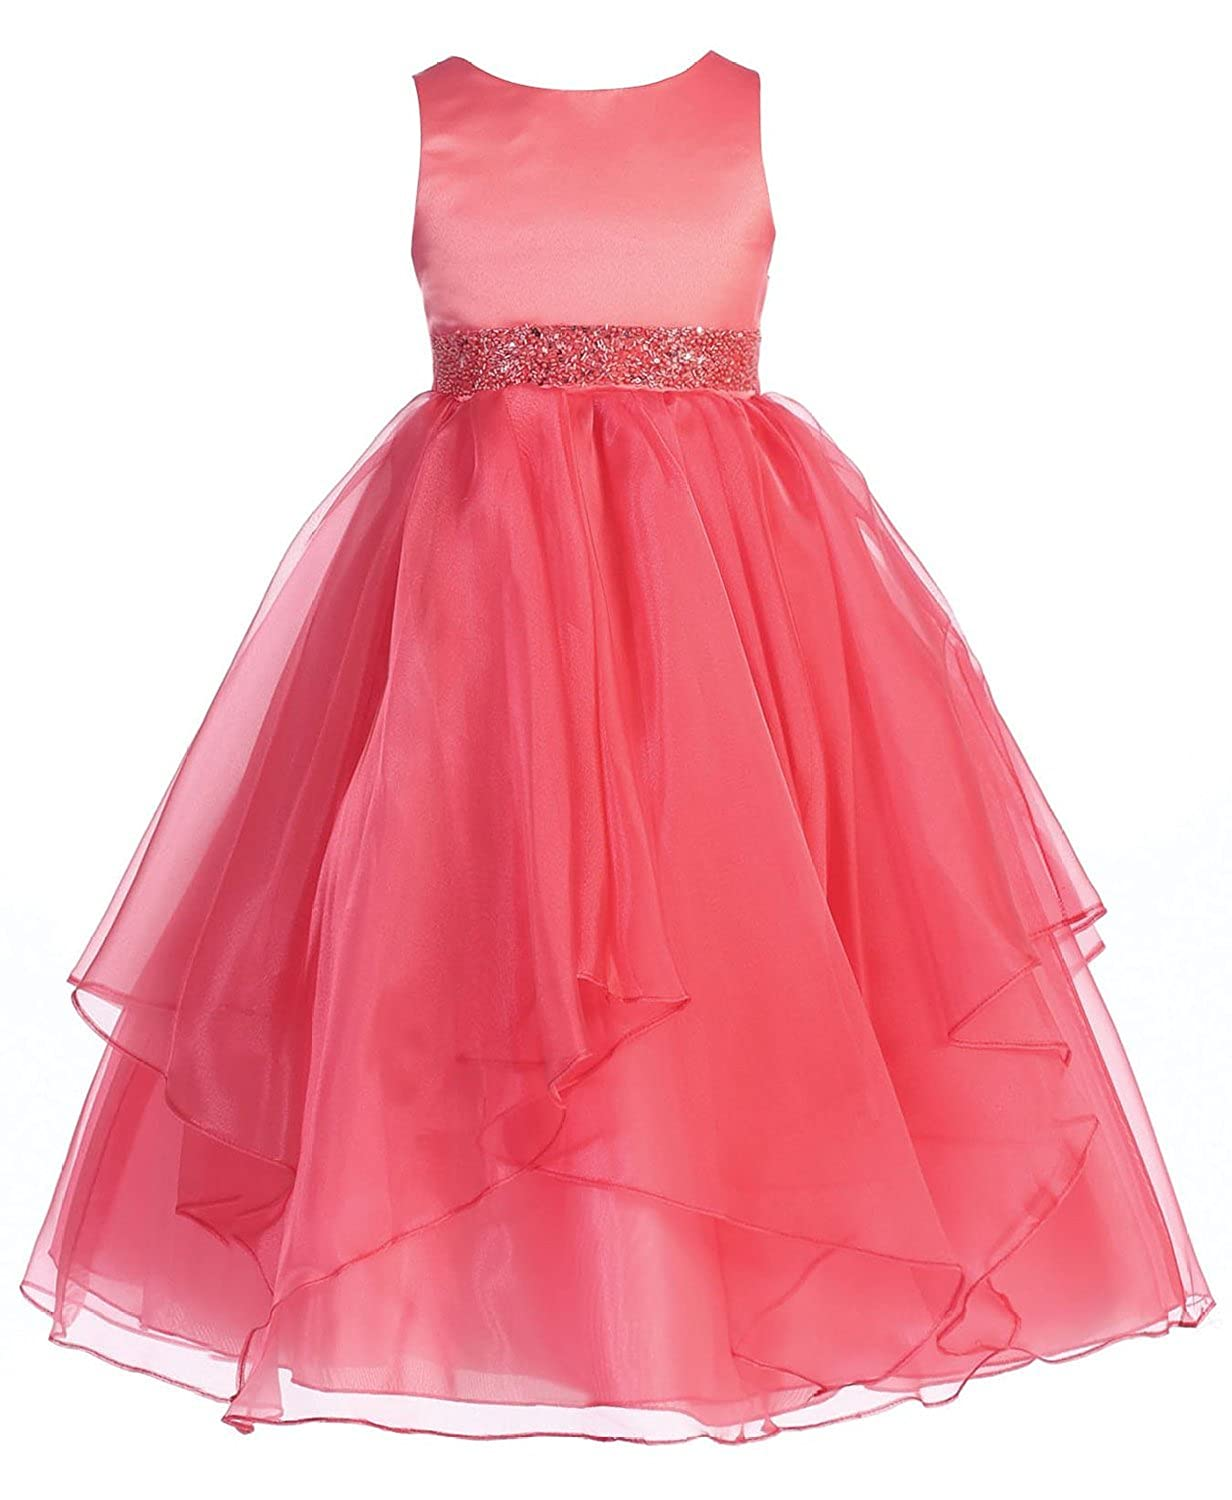 87189c6e260 Top1  Chic Baby Girls Asymmetric Ruffles Satin Organza Flower Girl Dress